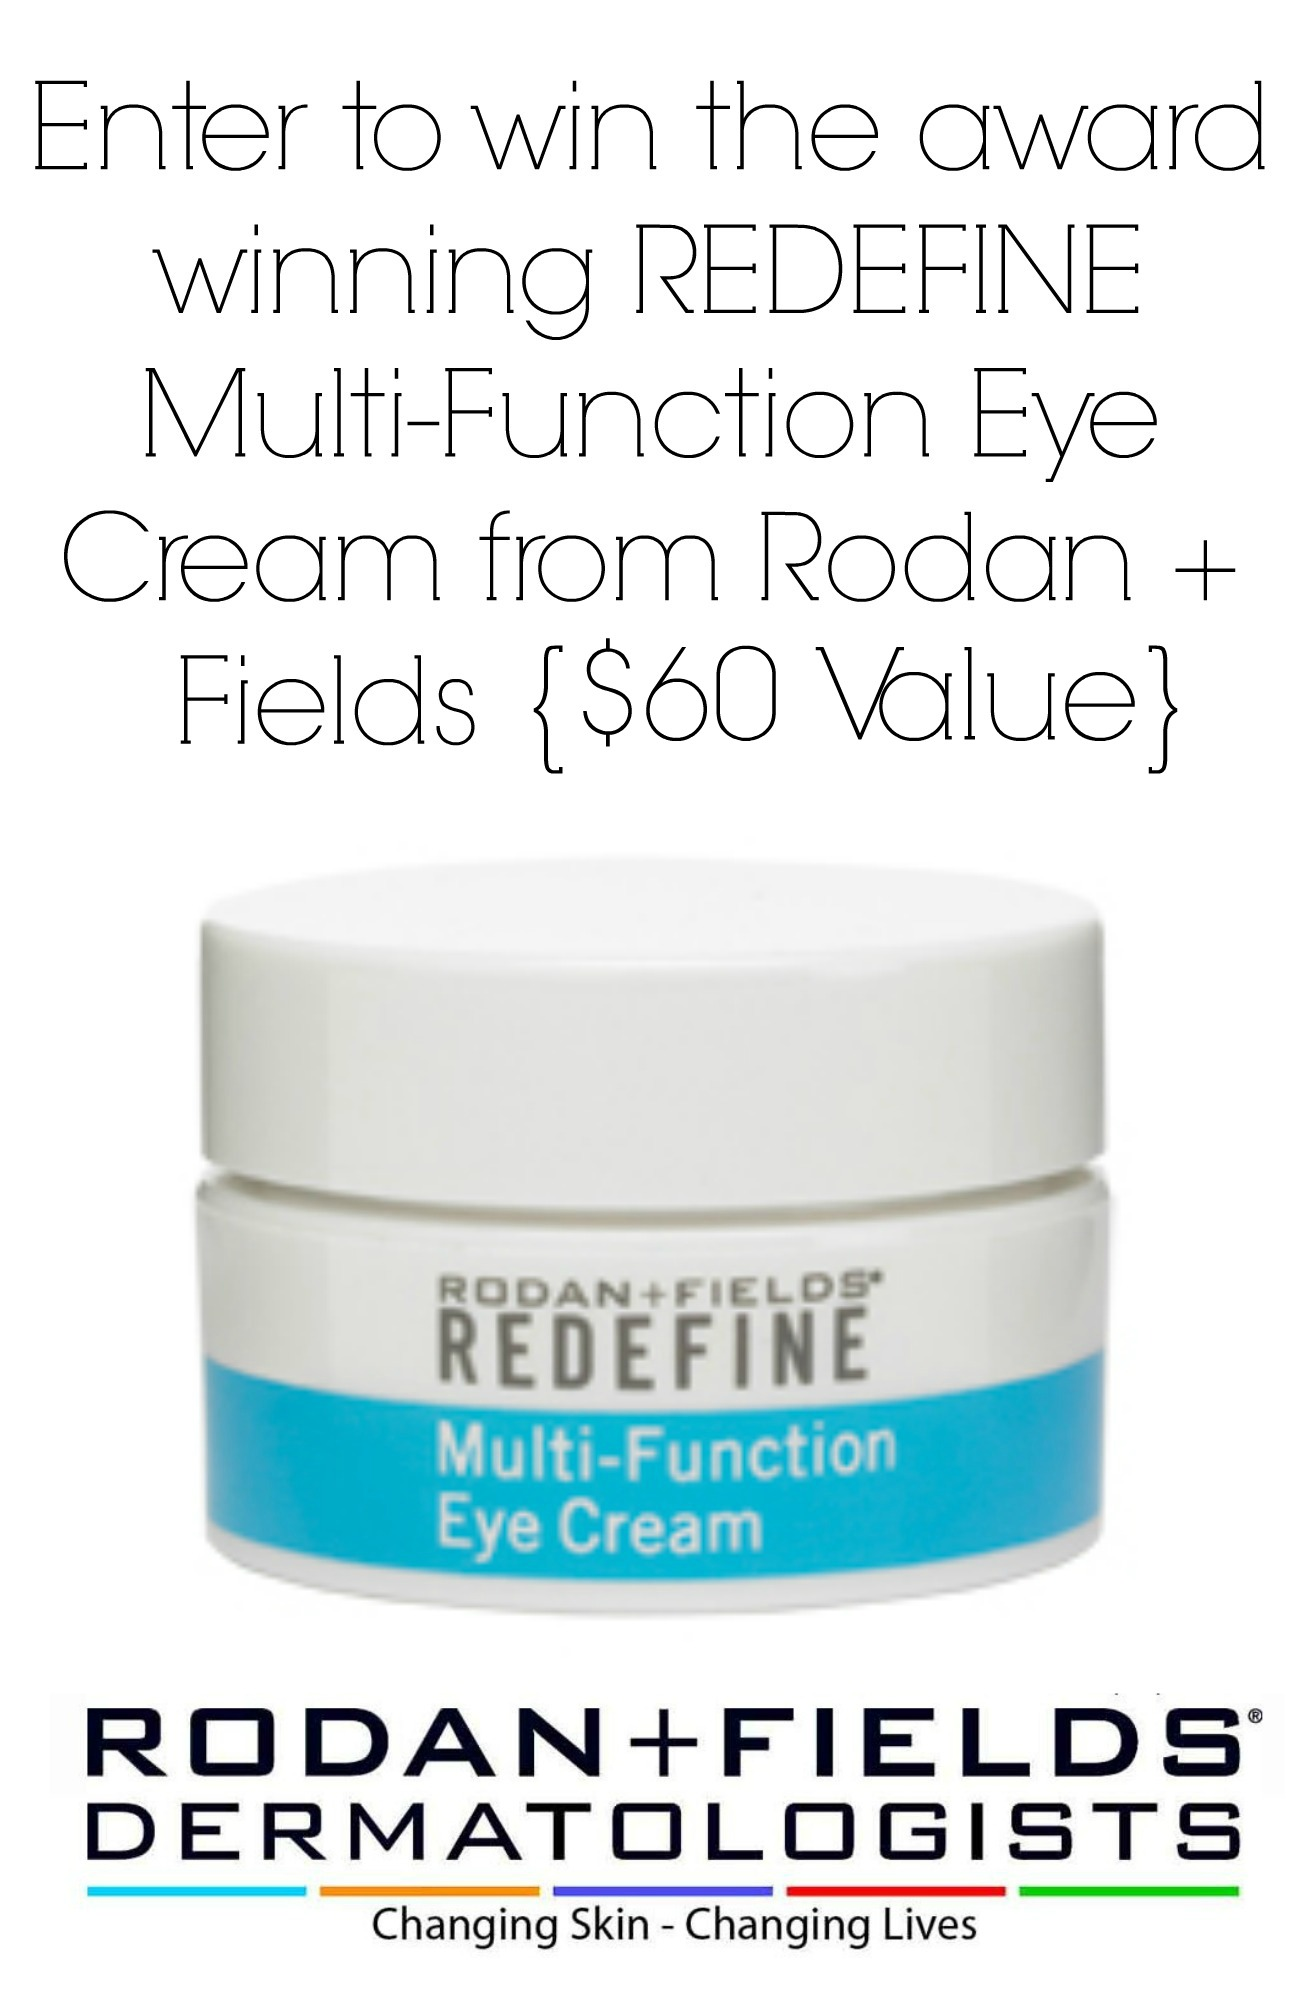 Rodan Fields Giveaway Win The Redefine Multi Function Eye